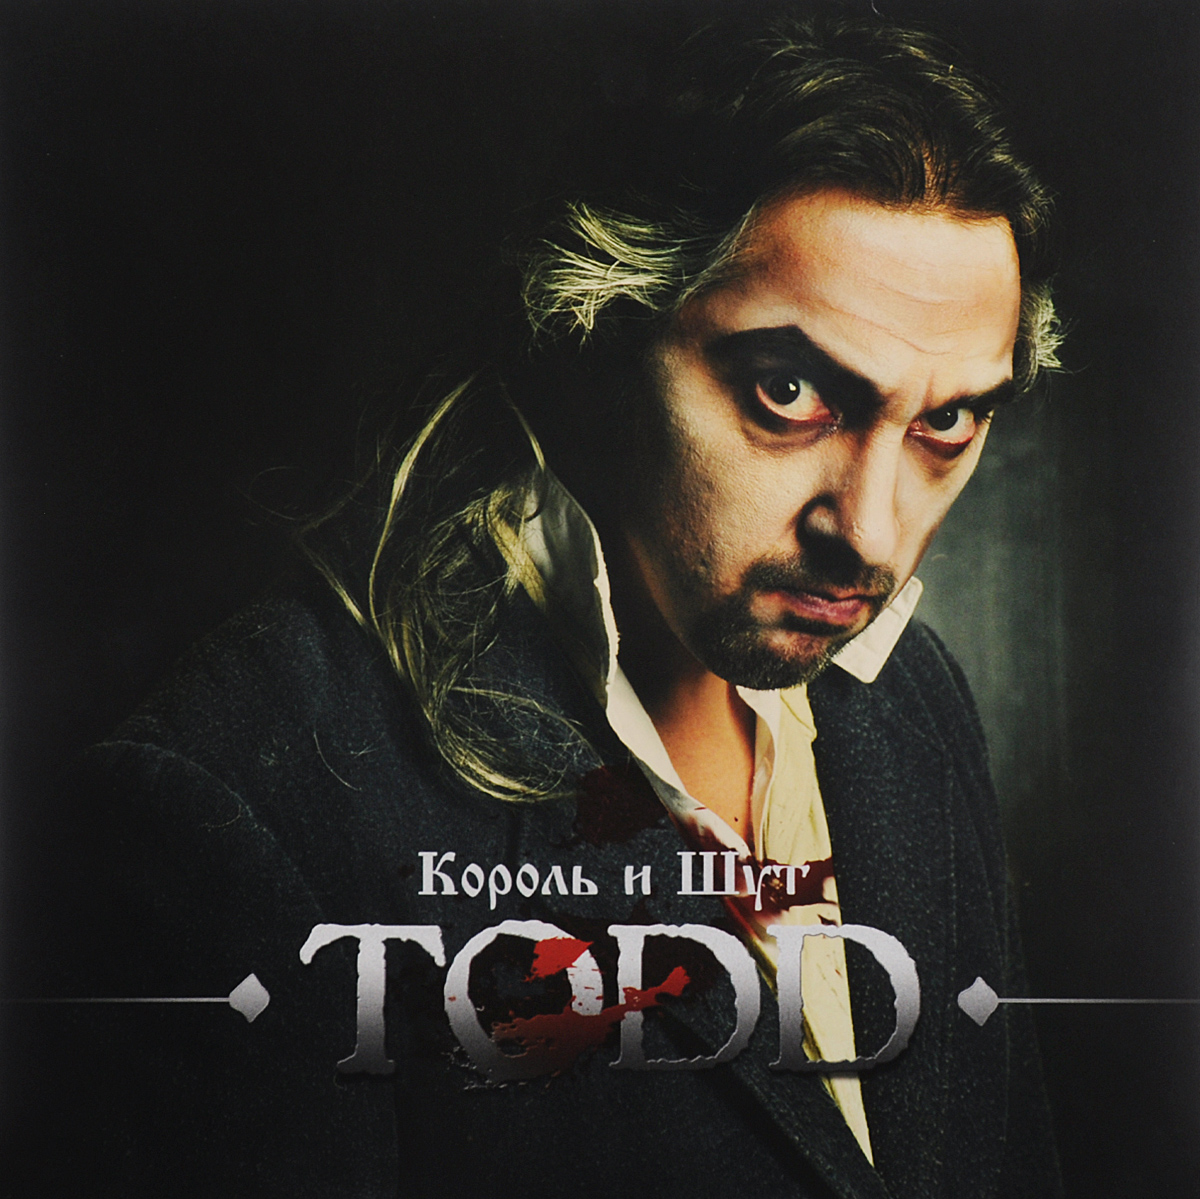 Король и Шут Король и Шут. Todd (2 LP) ian todd gavin spickett lucy fairclough lecture notes immunology